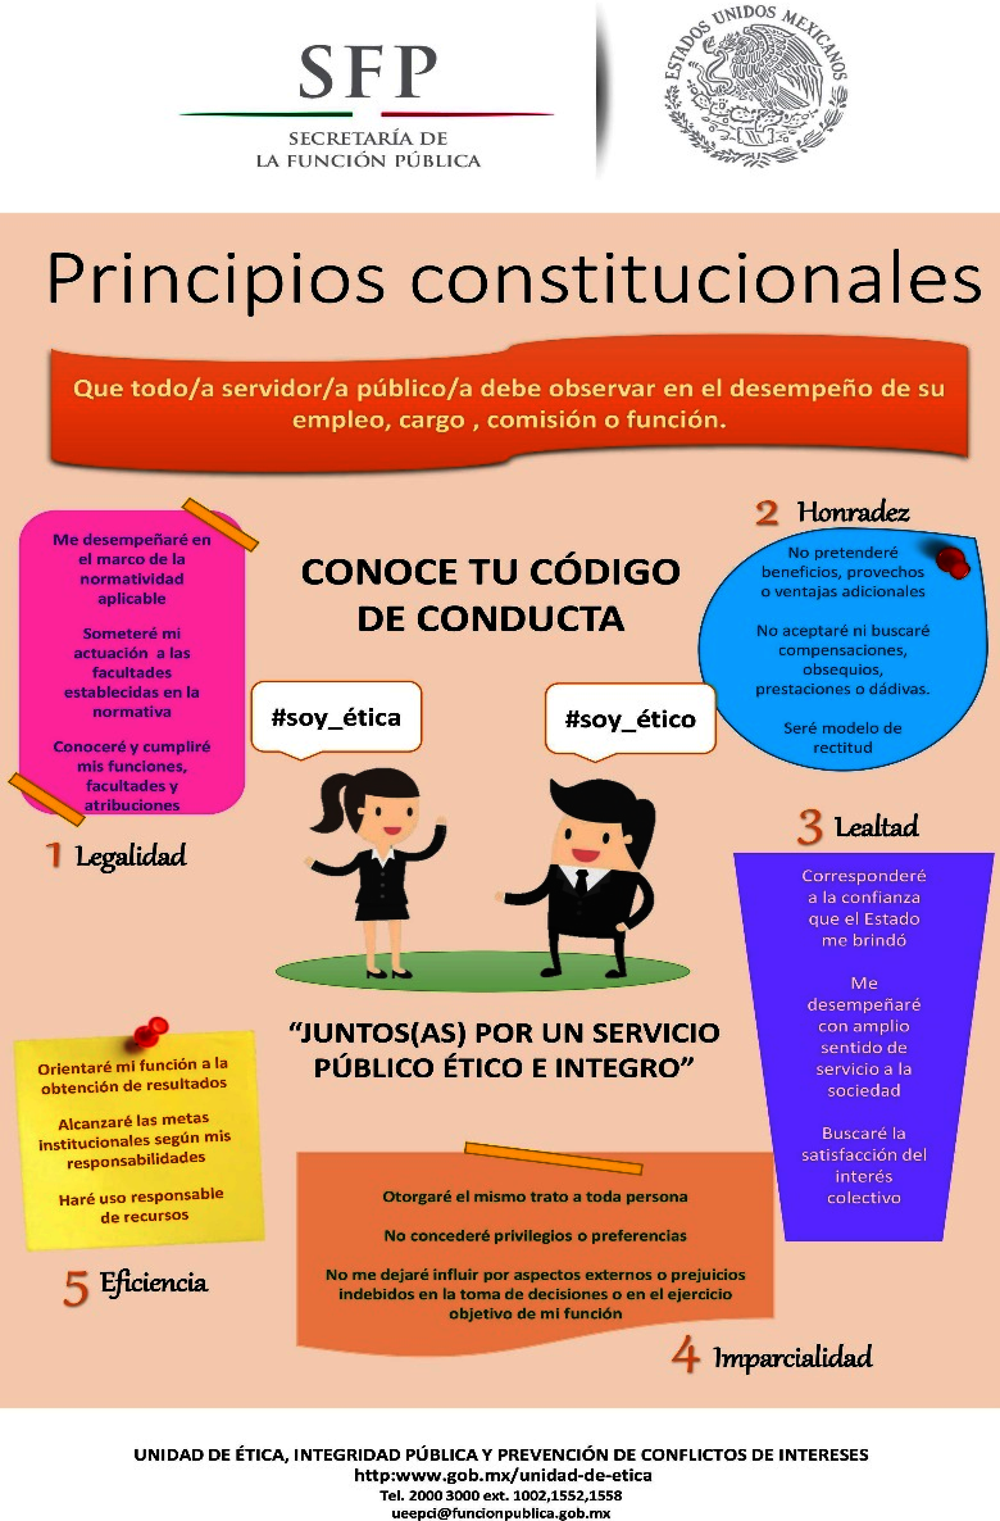 Figure 8.1. Poster of constitutional principles in Mexico